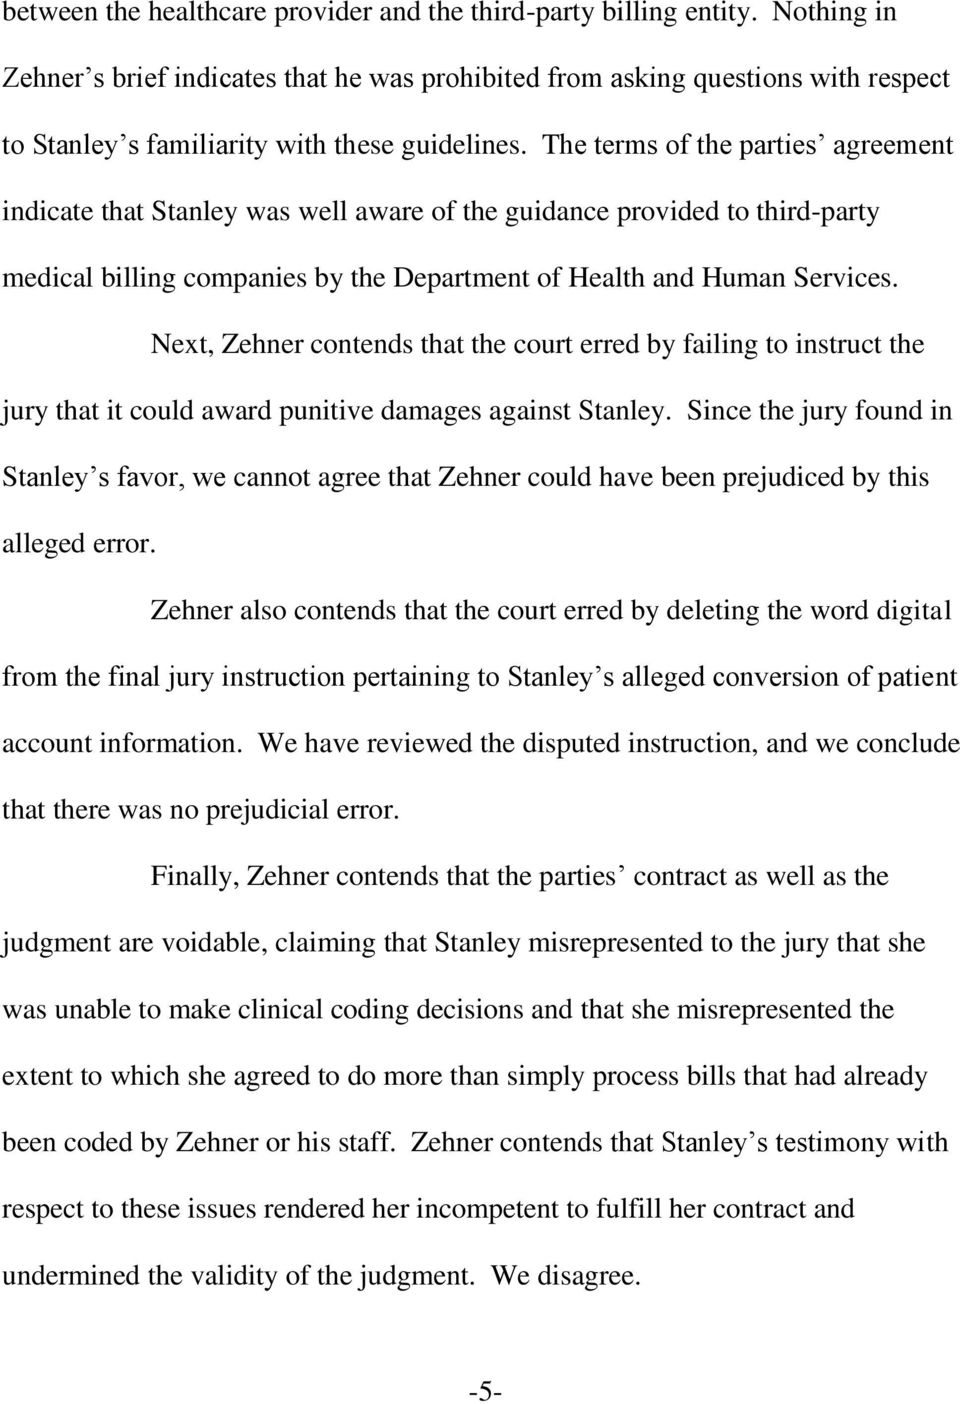 The terms of the parties agreement indicate that Stanley was well aware of the guidance provided to third-party medical billing companies by the Department of Health and Human Services.